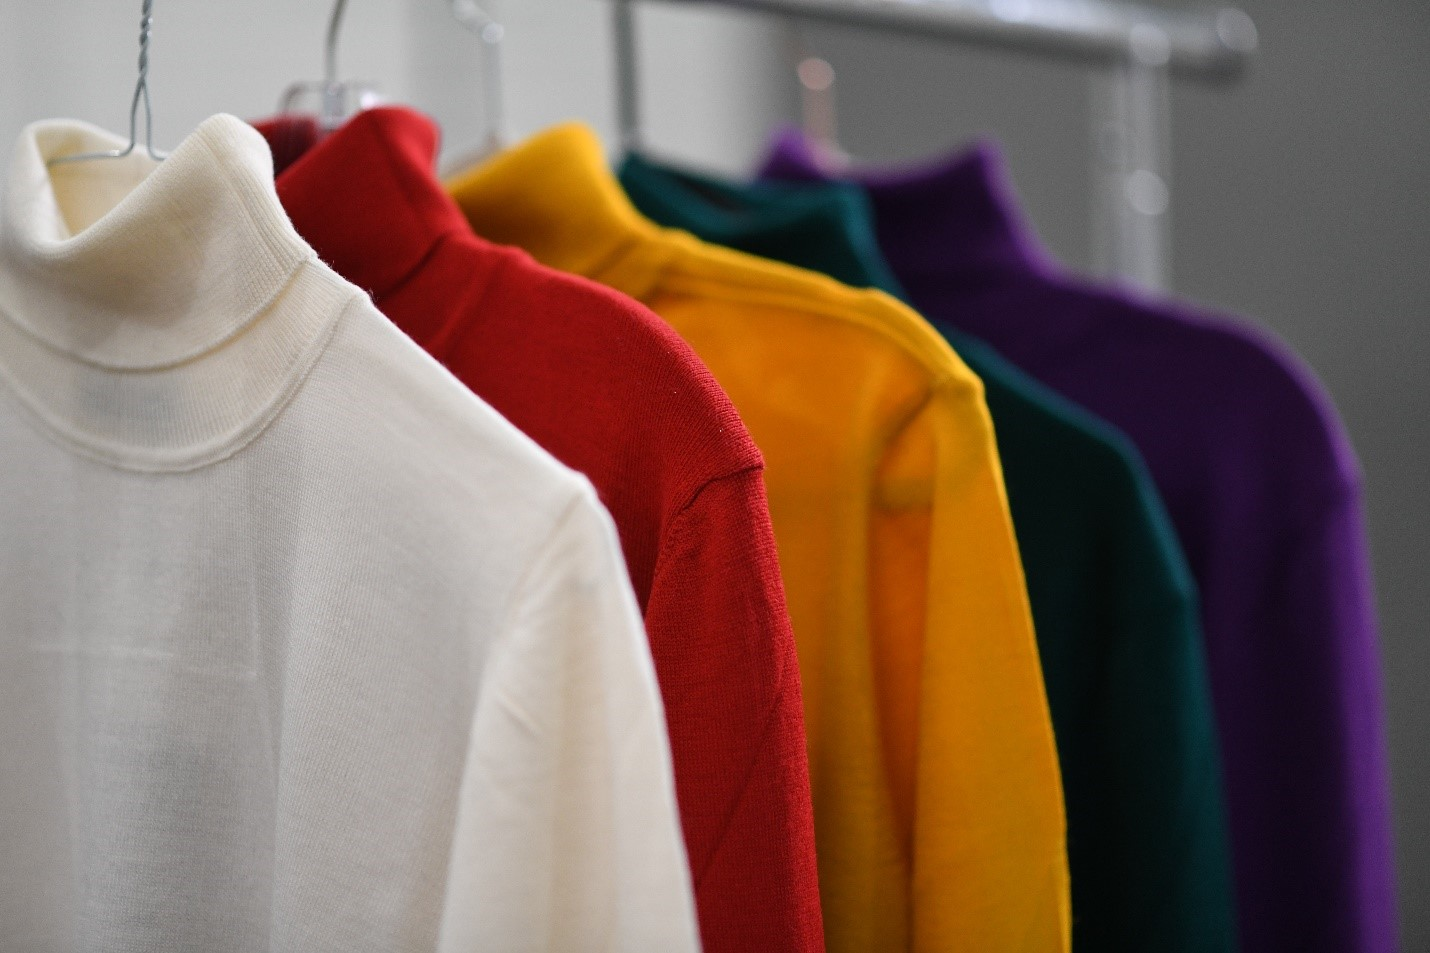 Assorted turtleneck apparel hanging in a clothing company